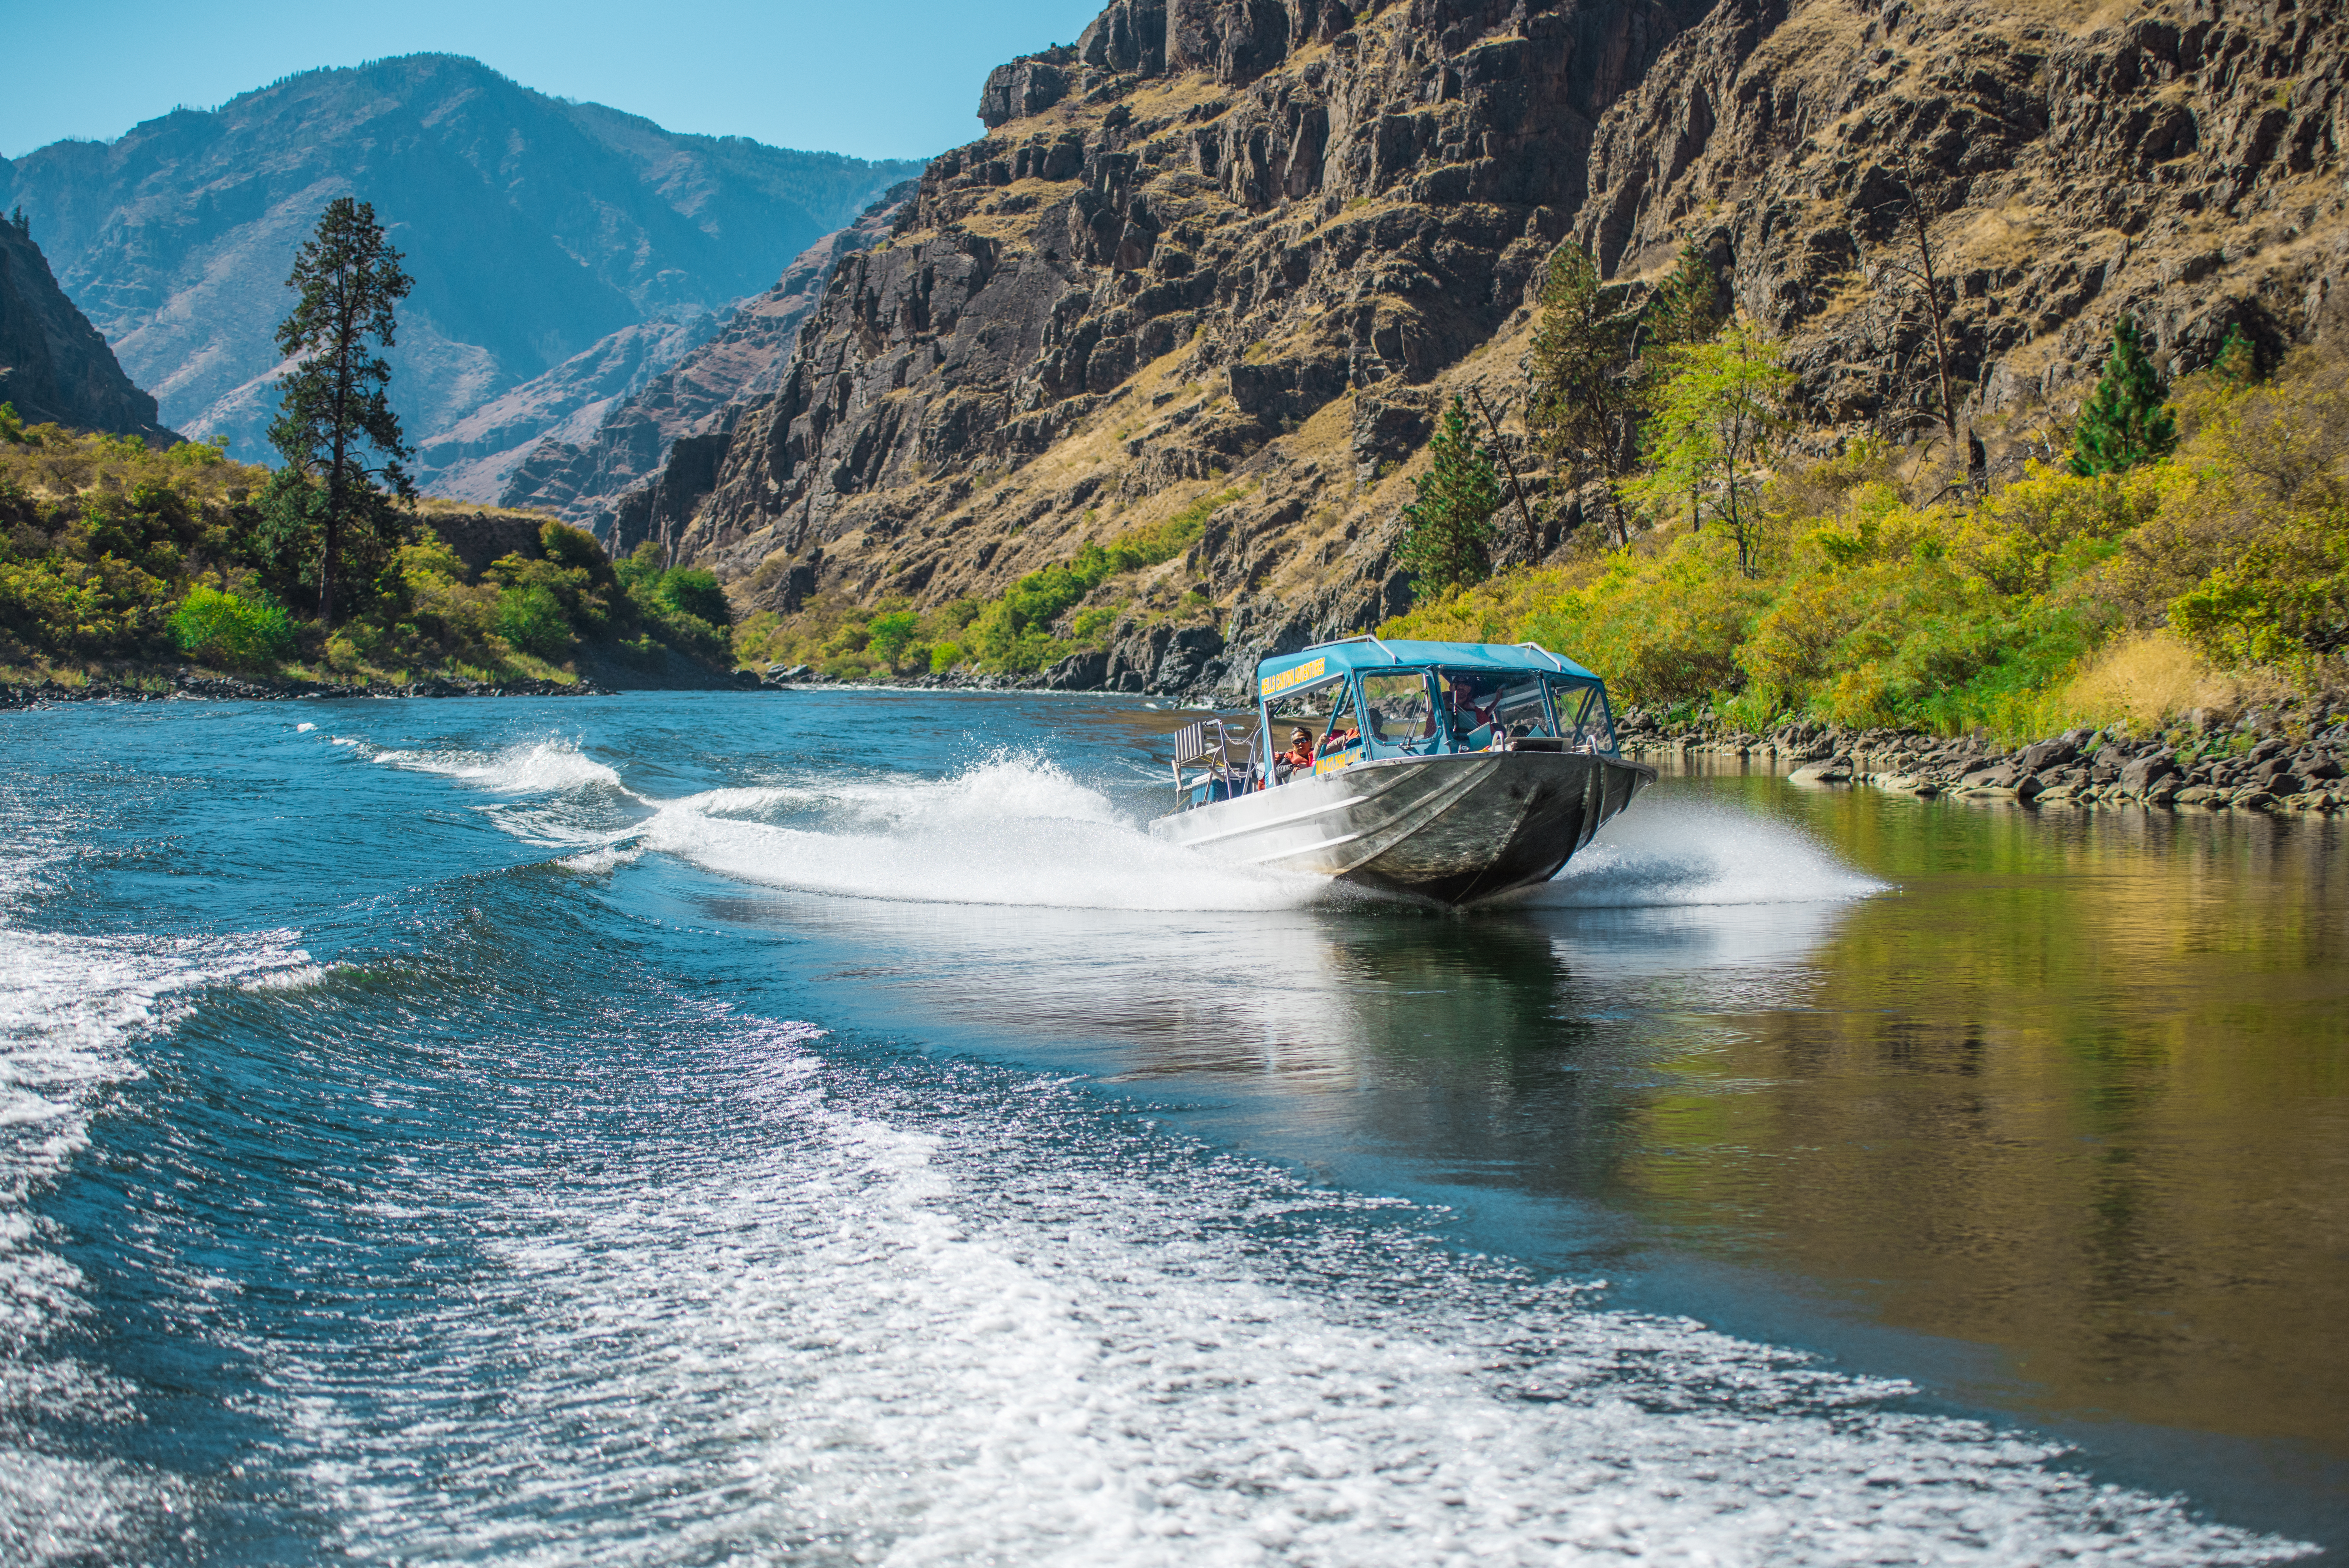 Jet boating in Hells Canyon. Photo Credit: Idaho Tourism